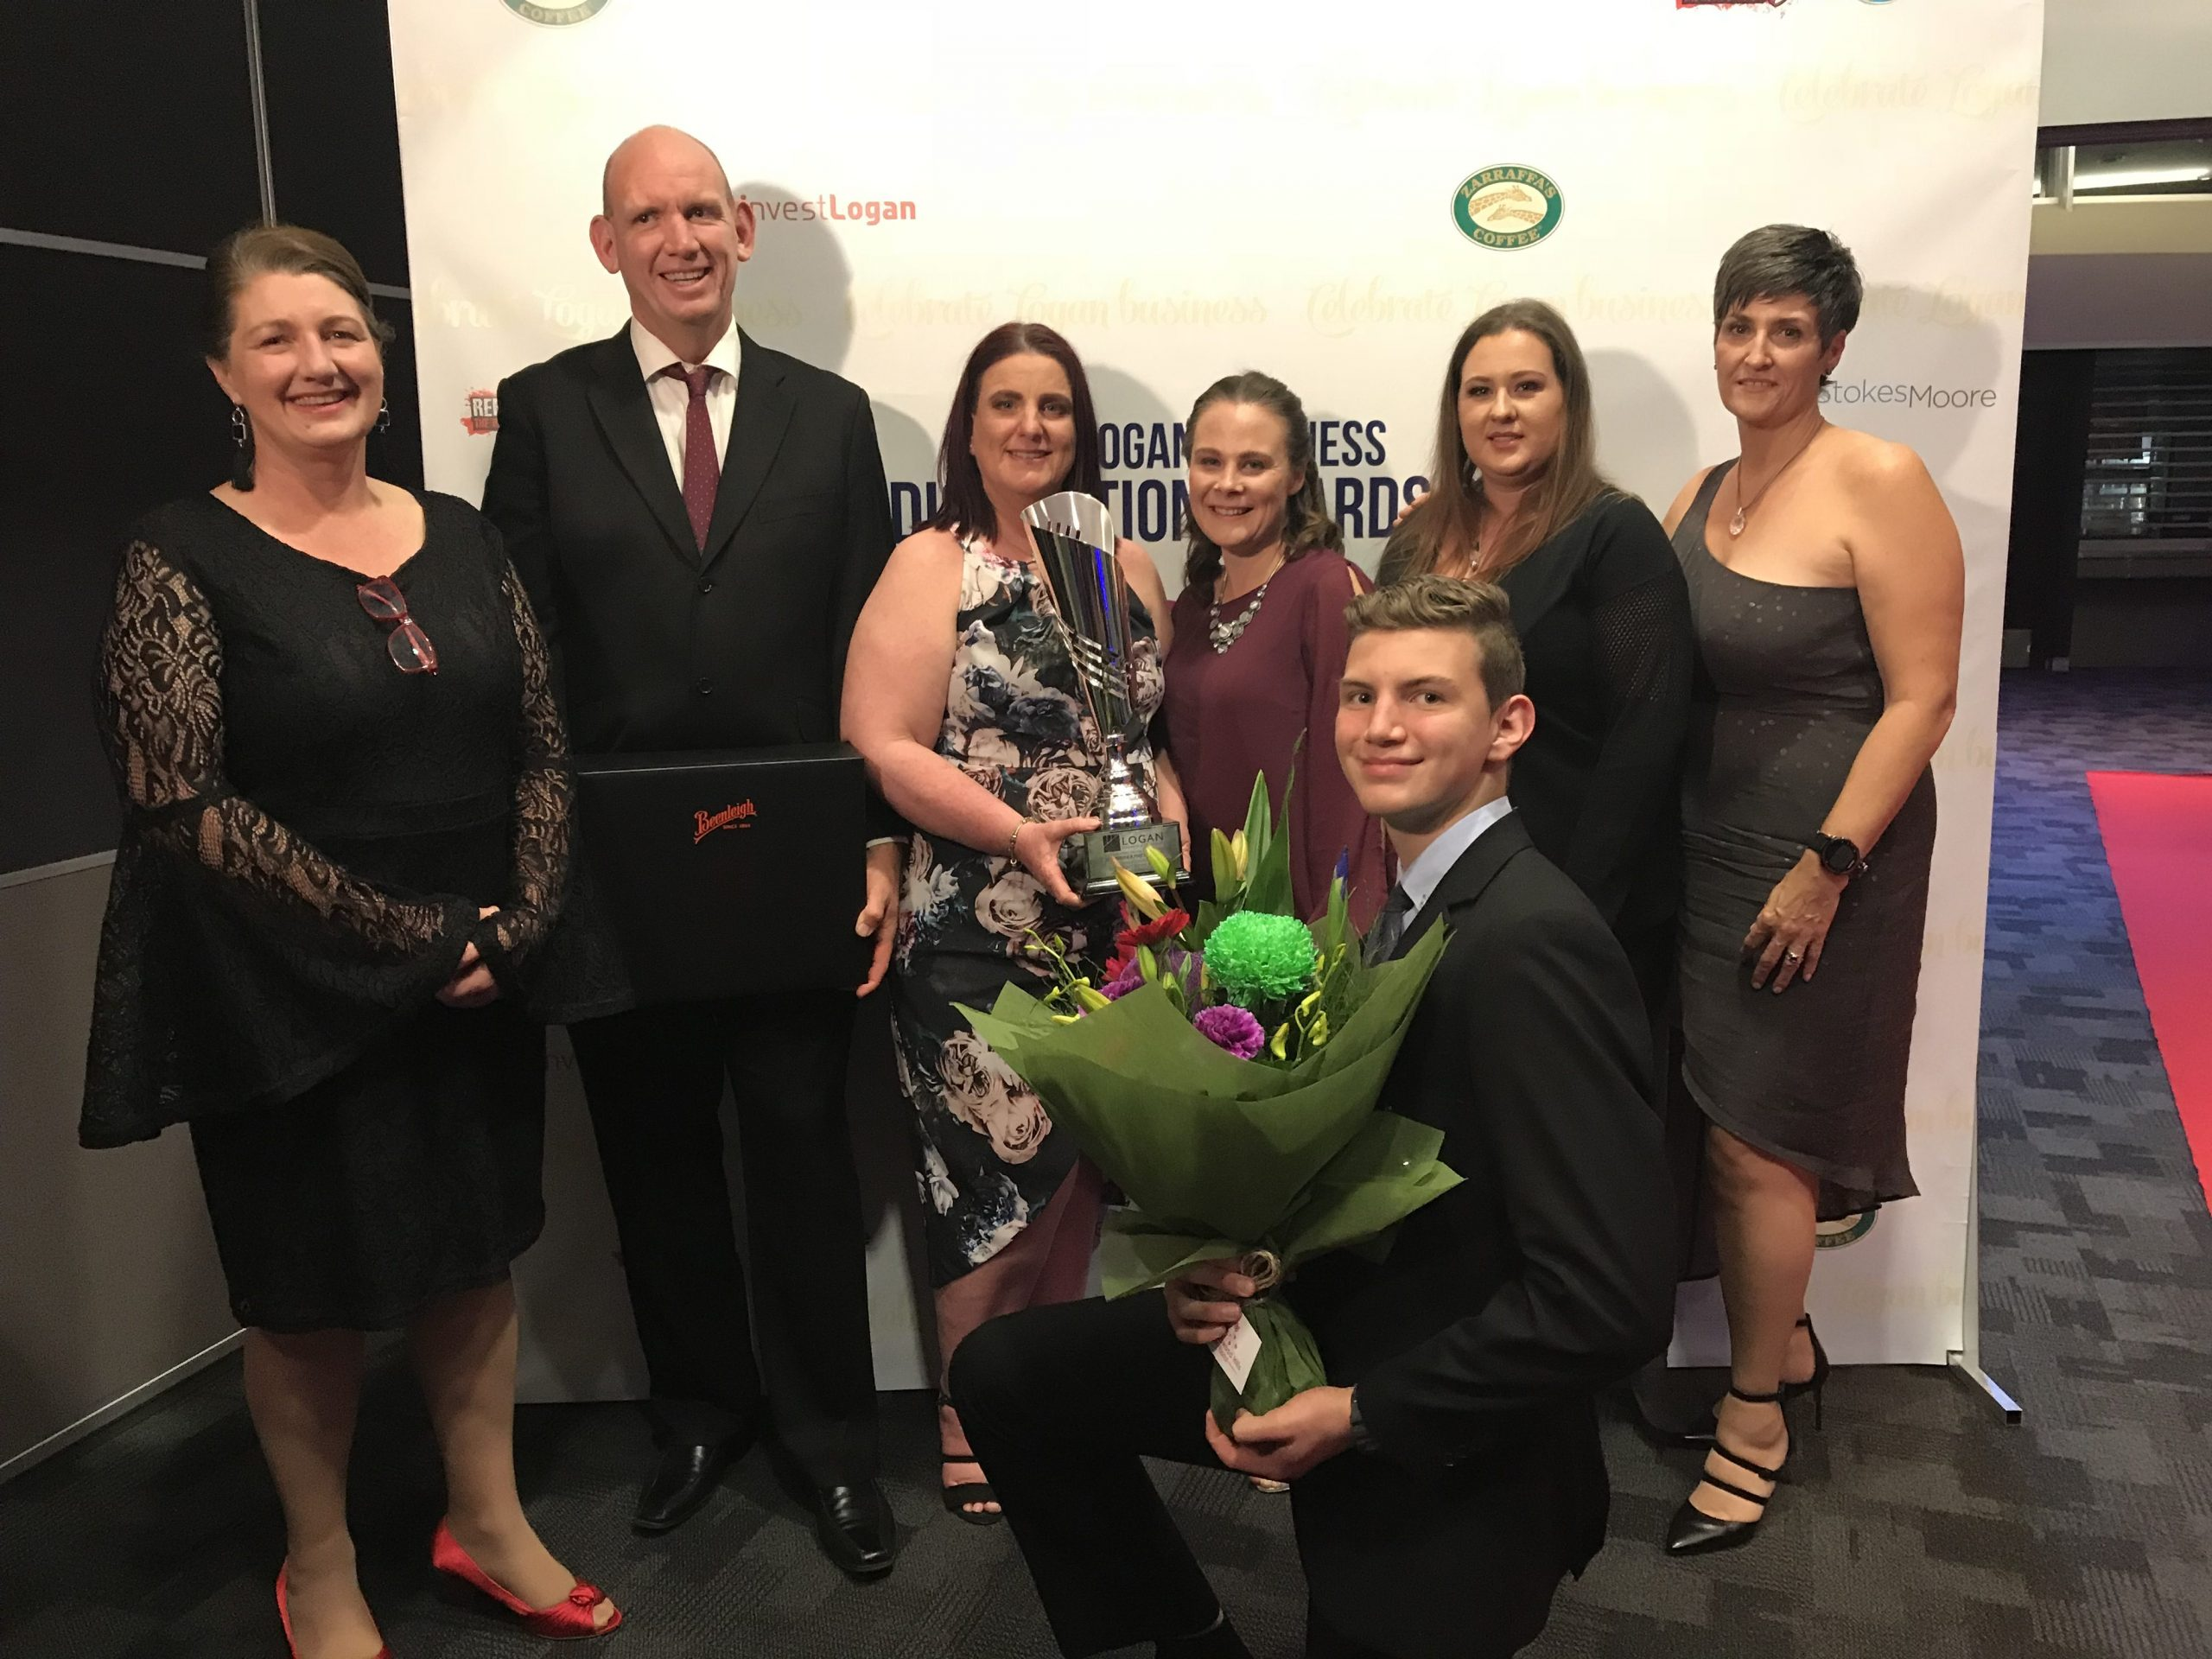 Logan Business Of The Year Awards 2018